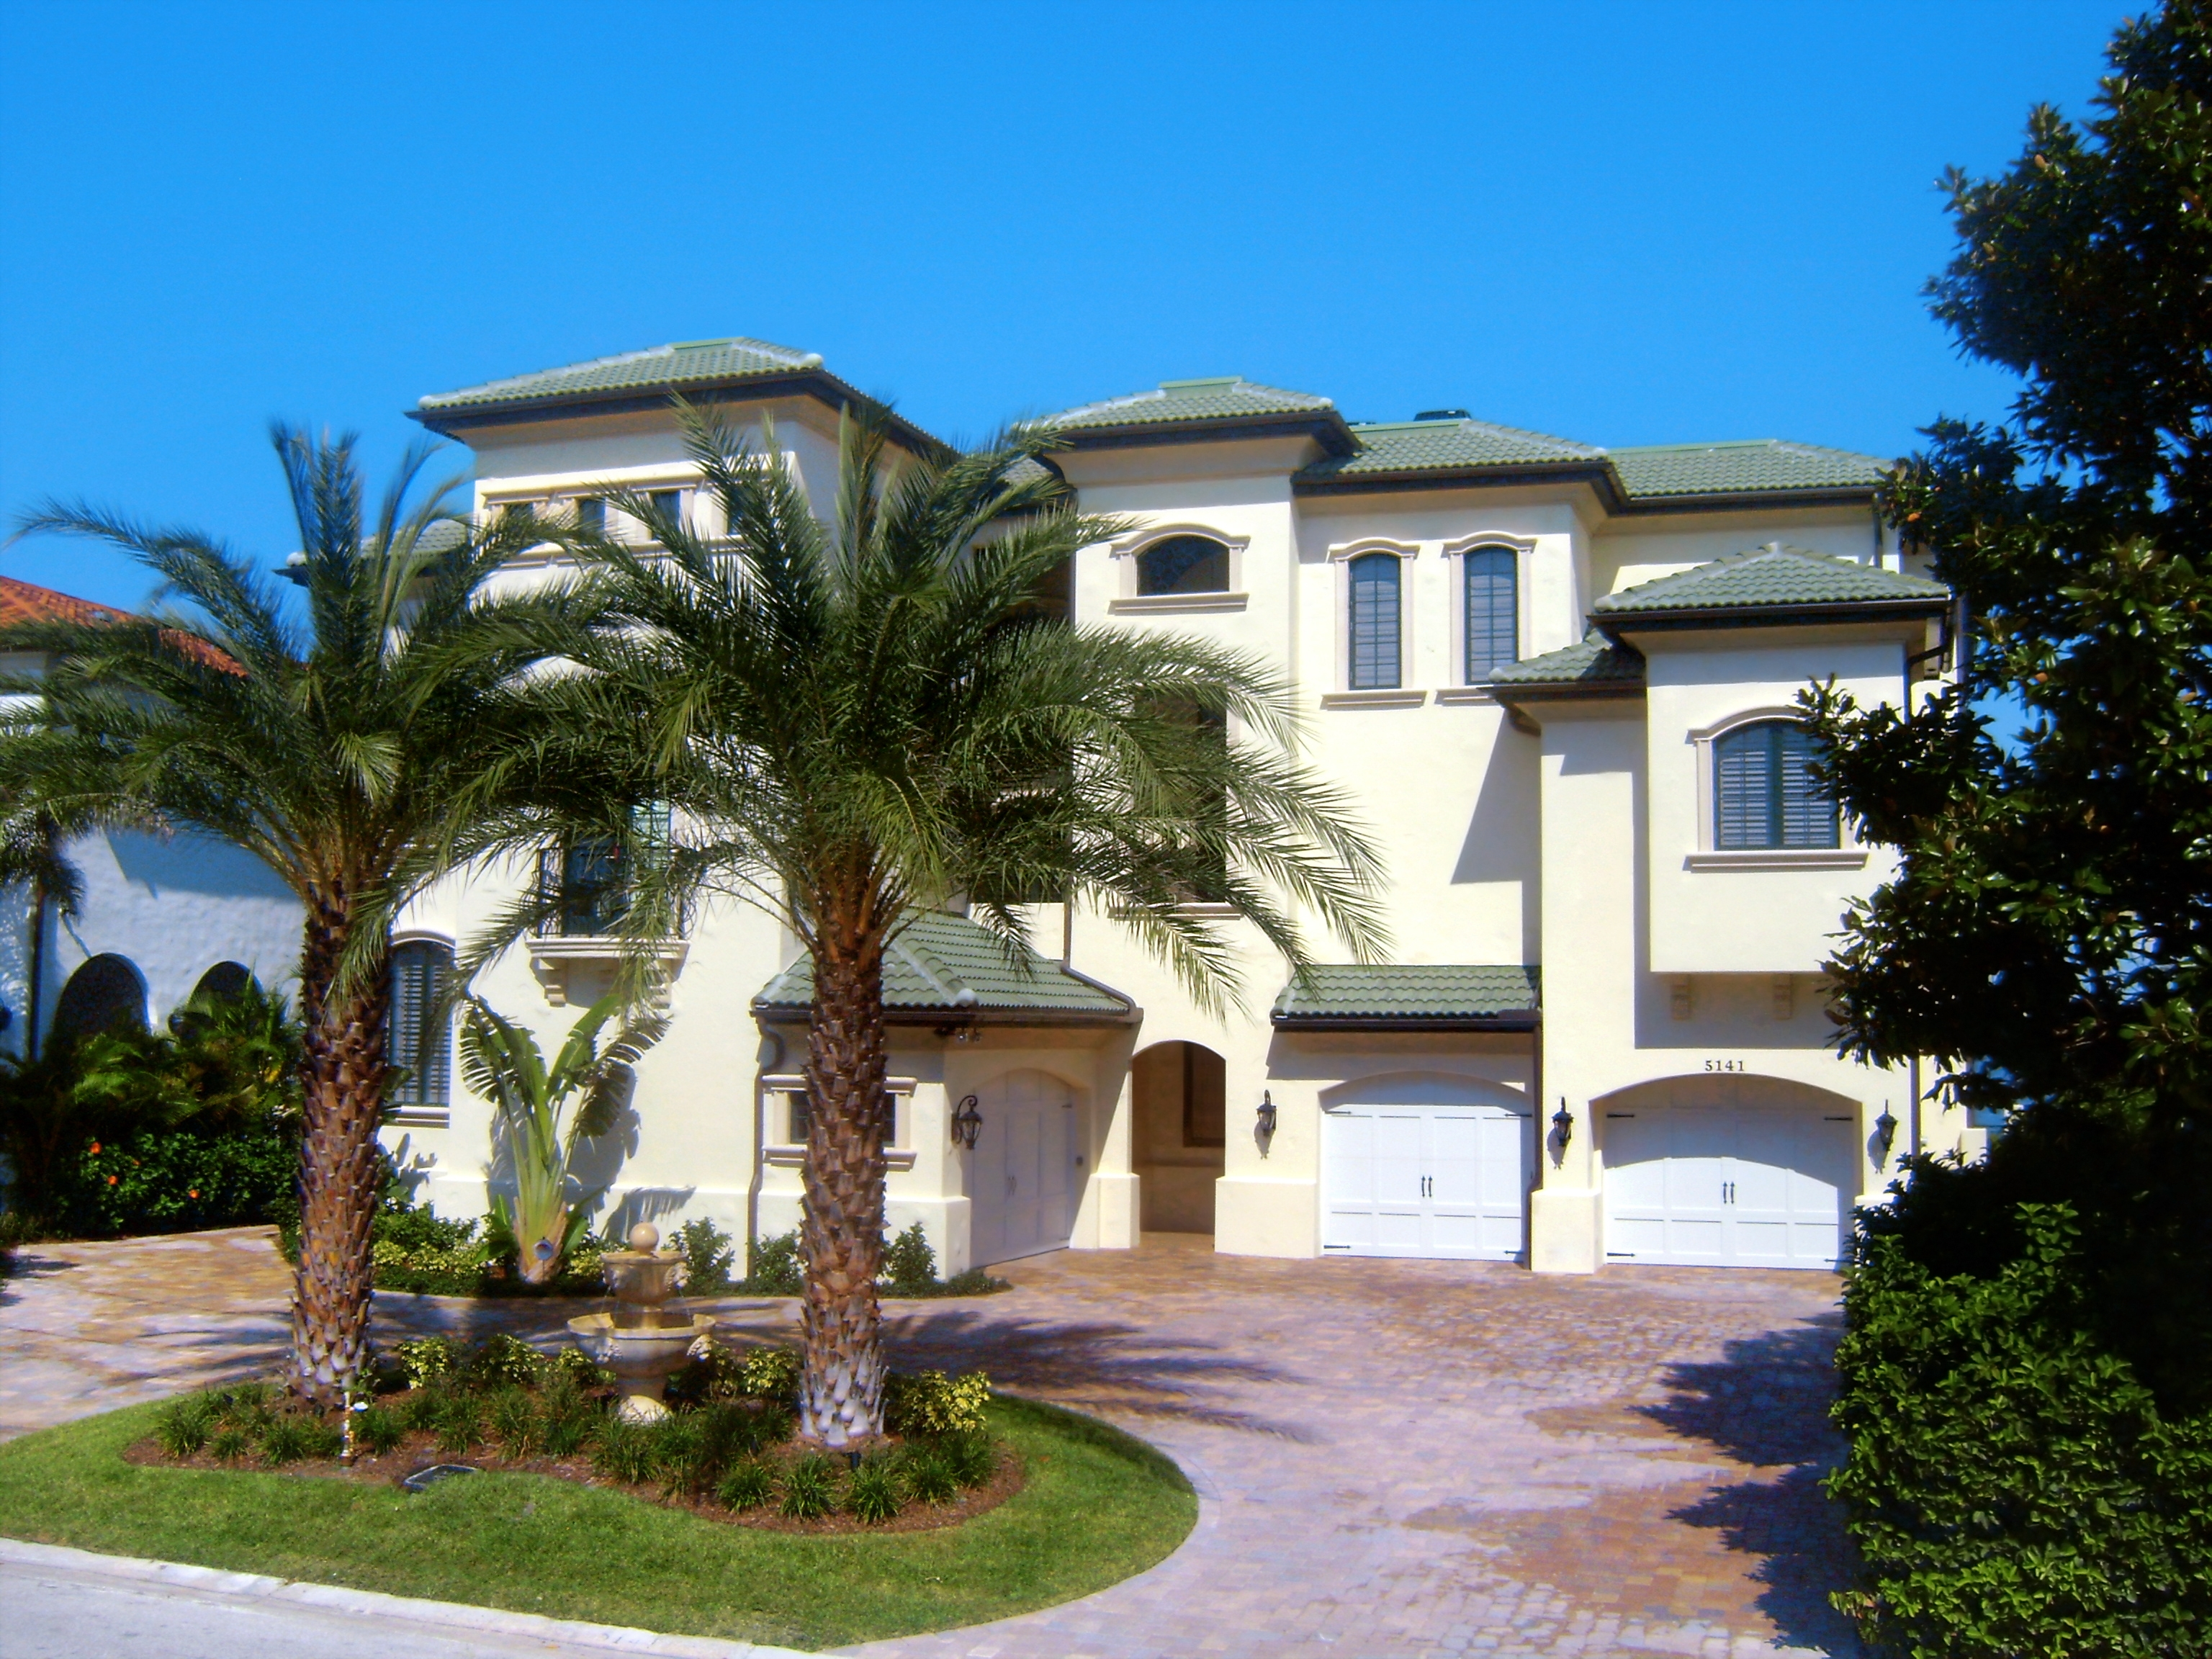 Buy Sylvester Palm Trees in Miami, Ft Lauderdale, Kendall